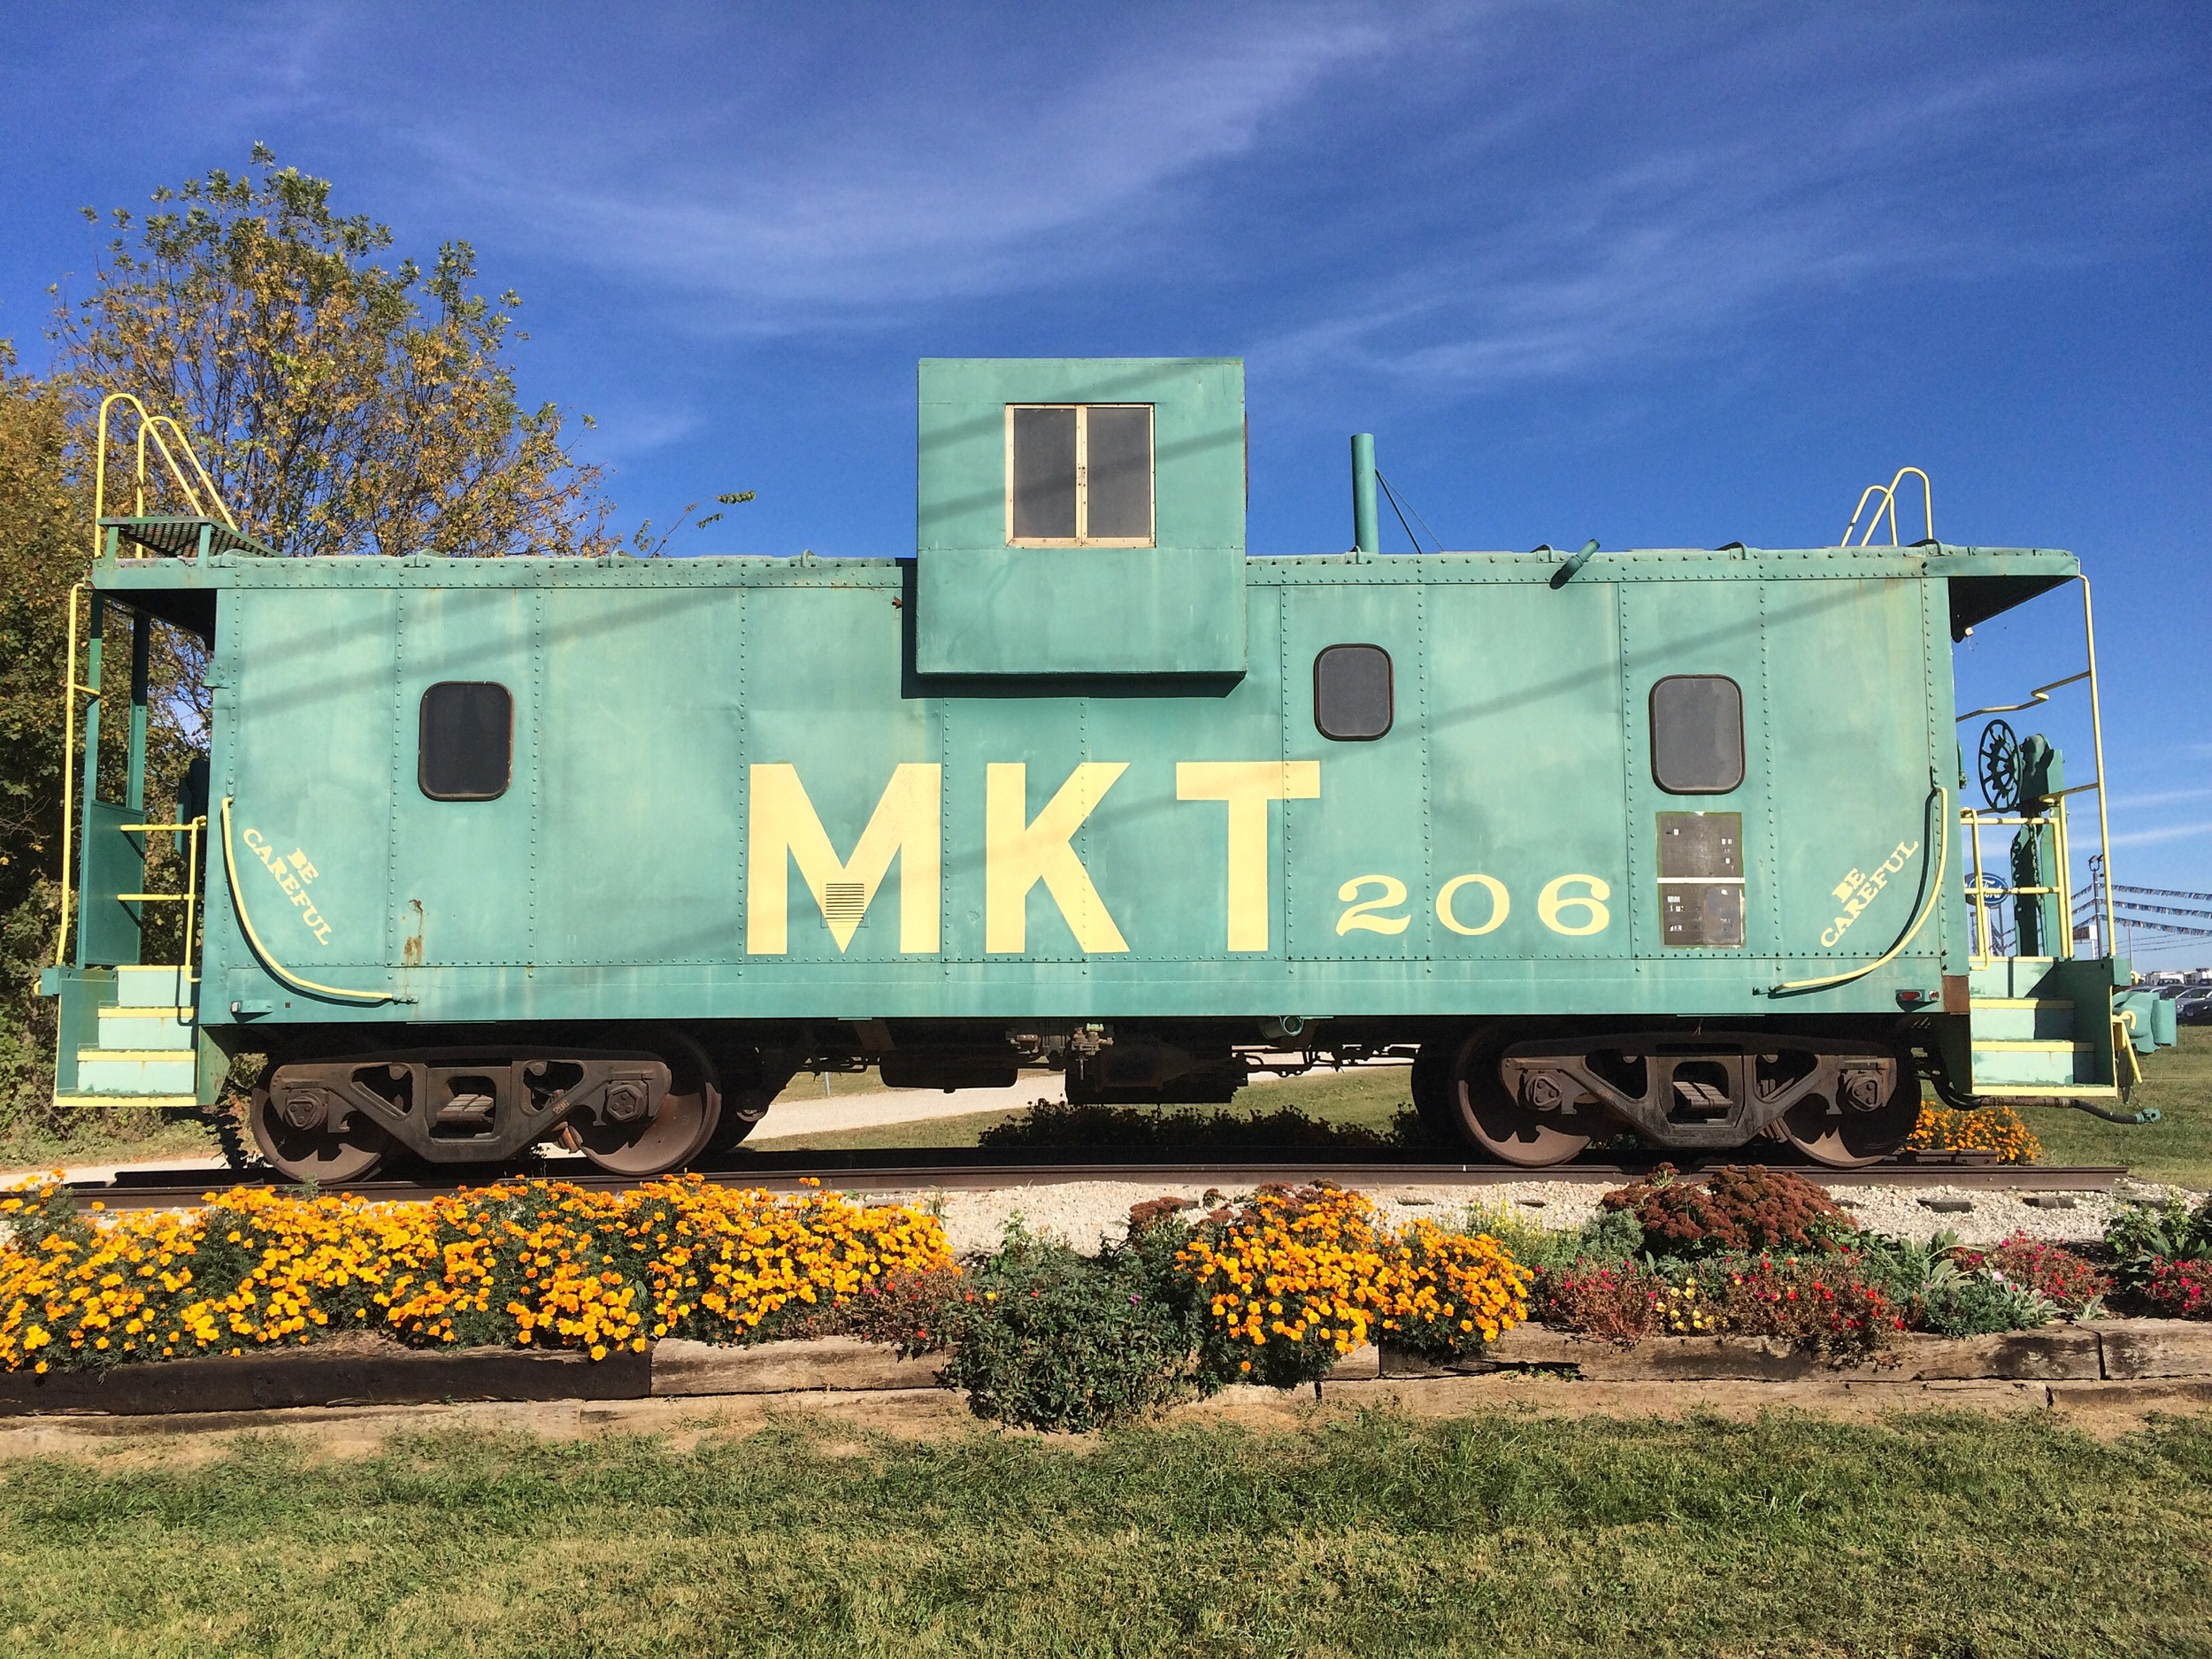 End of the line: this MKT (Katy) Railroad caboose sits at the trailhead in Clinton, 225 miles southwest from where I started the trail in St. Charles.